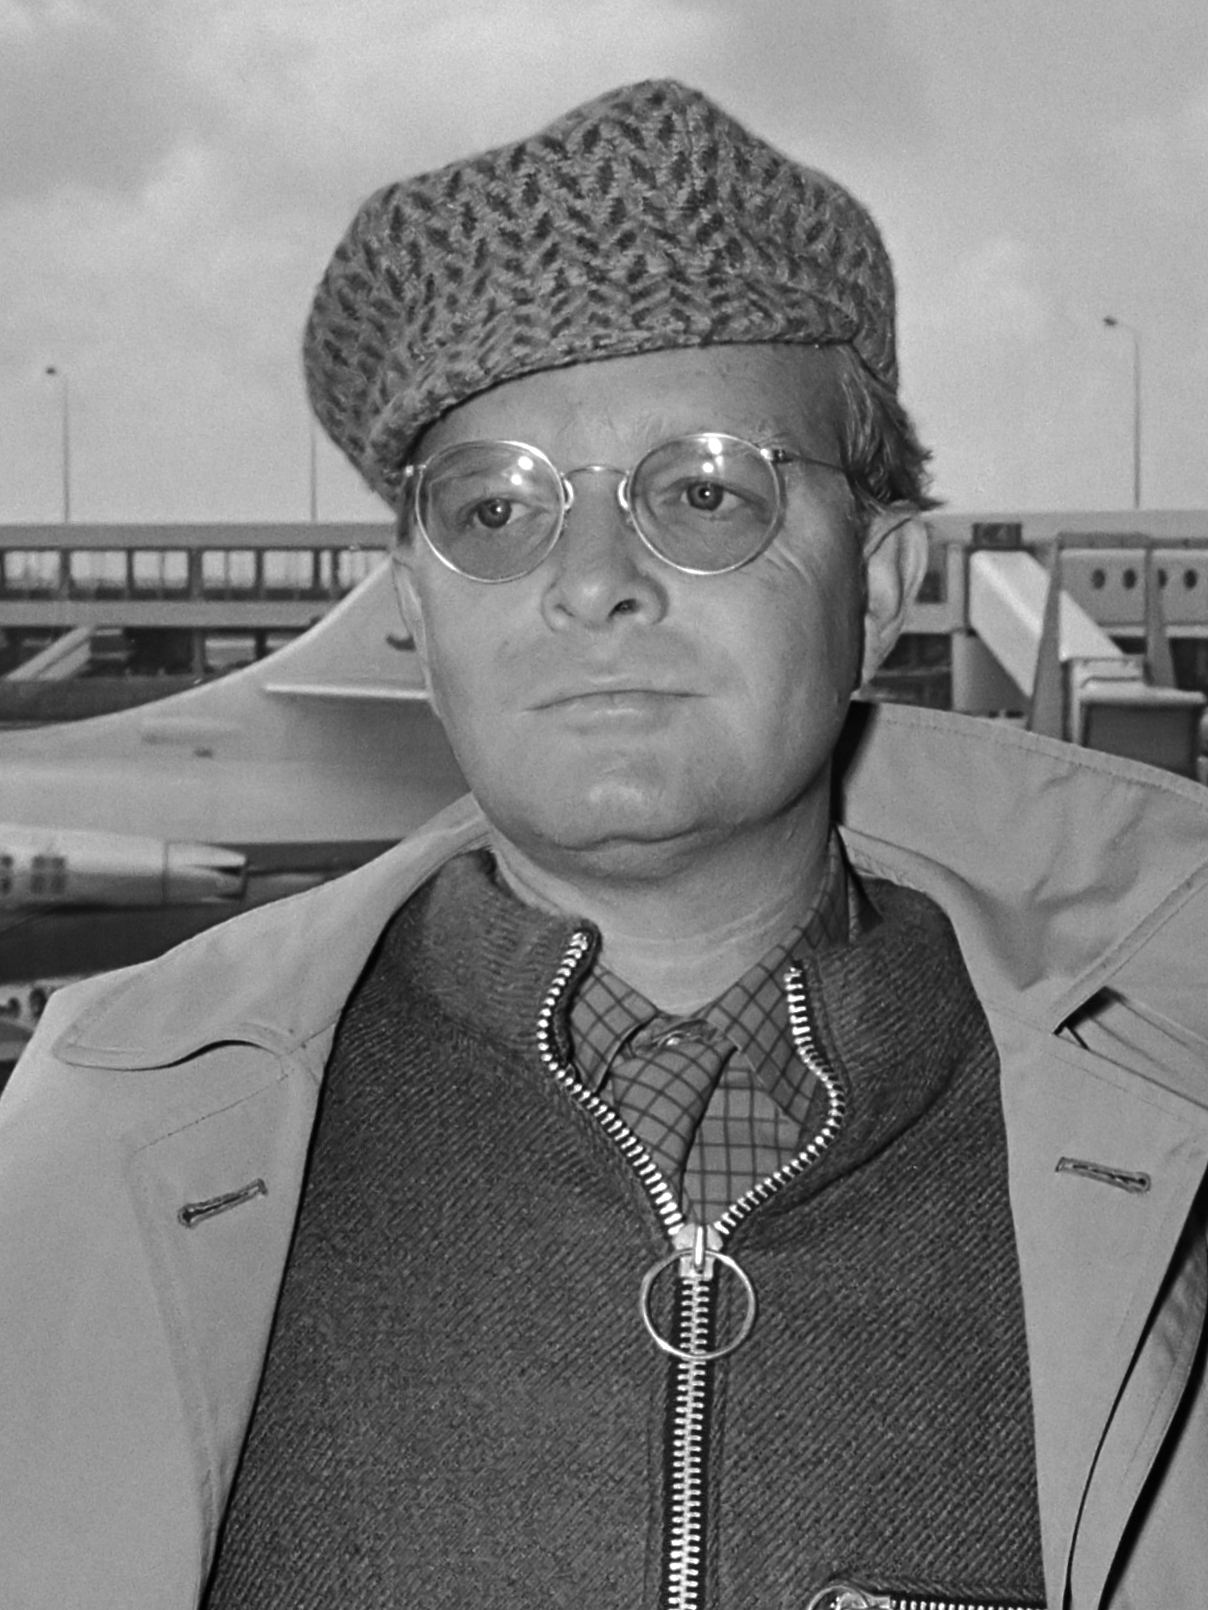 a summary of in cold blood by truman capote For truman capote the outcome of his sojourn in west kansas was decidedly mixed in cold blood, which he immodestly heralded as a new form of non-fiction novel, was received with delirious.